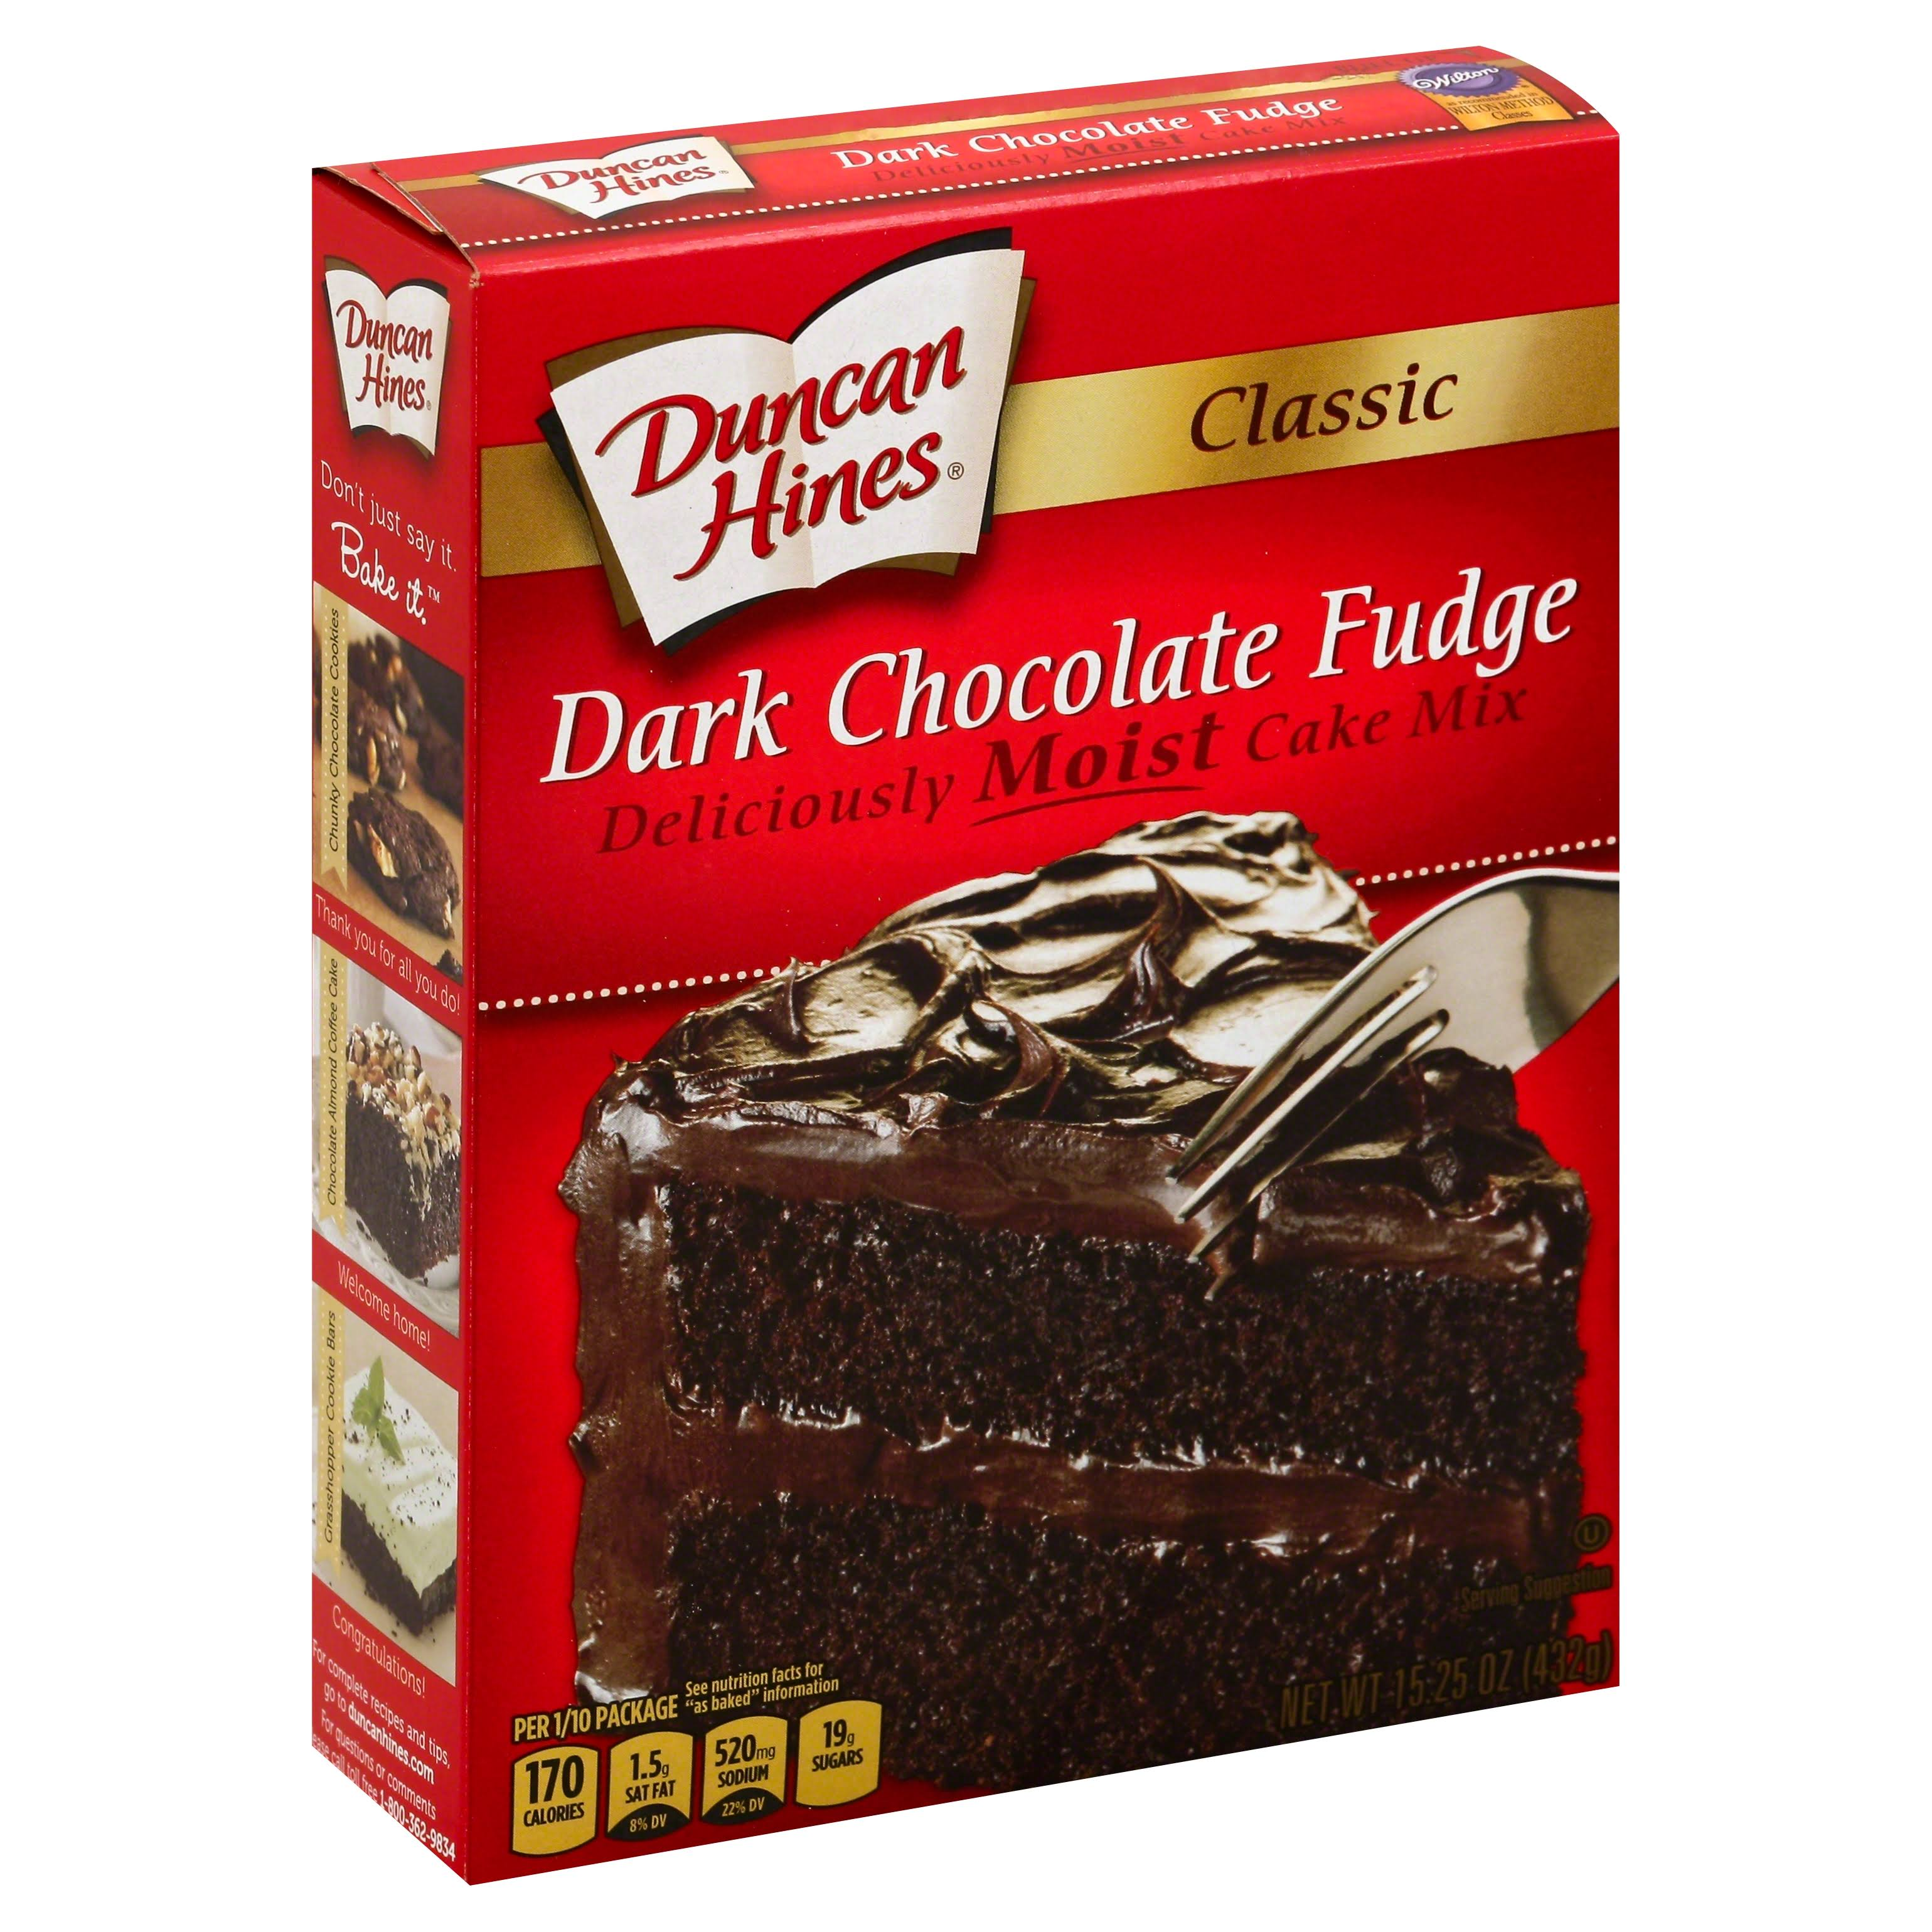 Duncan Hines Classic Dark Chocolate Fudge Cake Mix - 437g